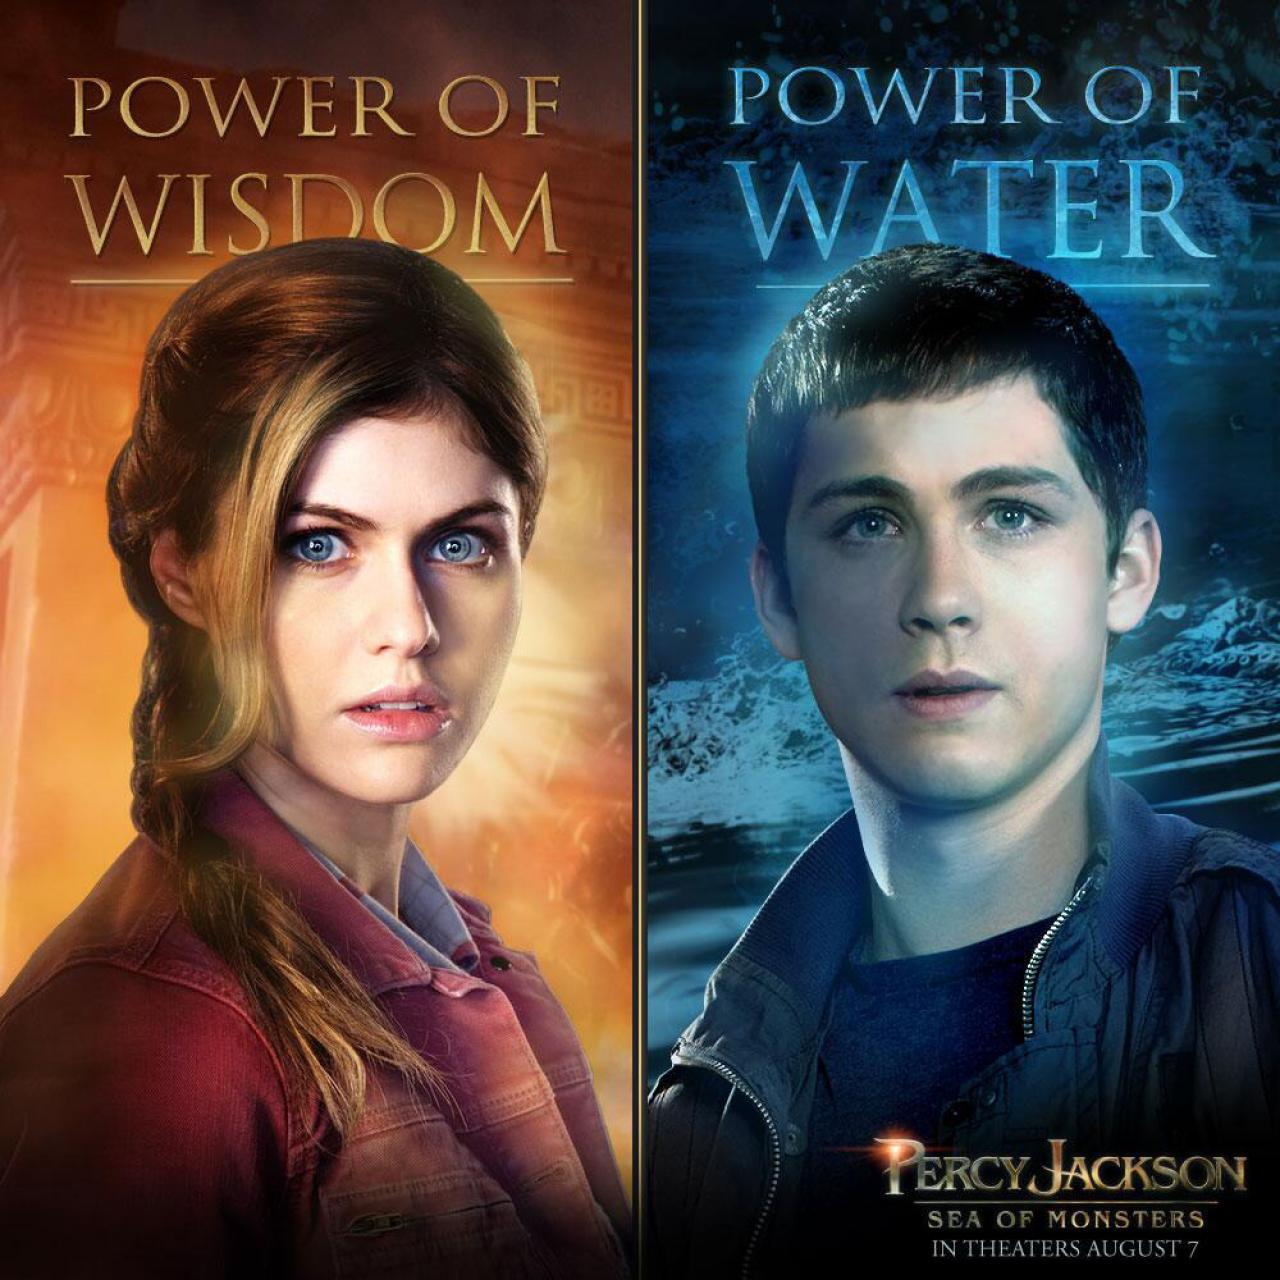 New Character Posters For Percy Jackson Sea Of Monsters